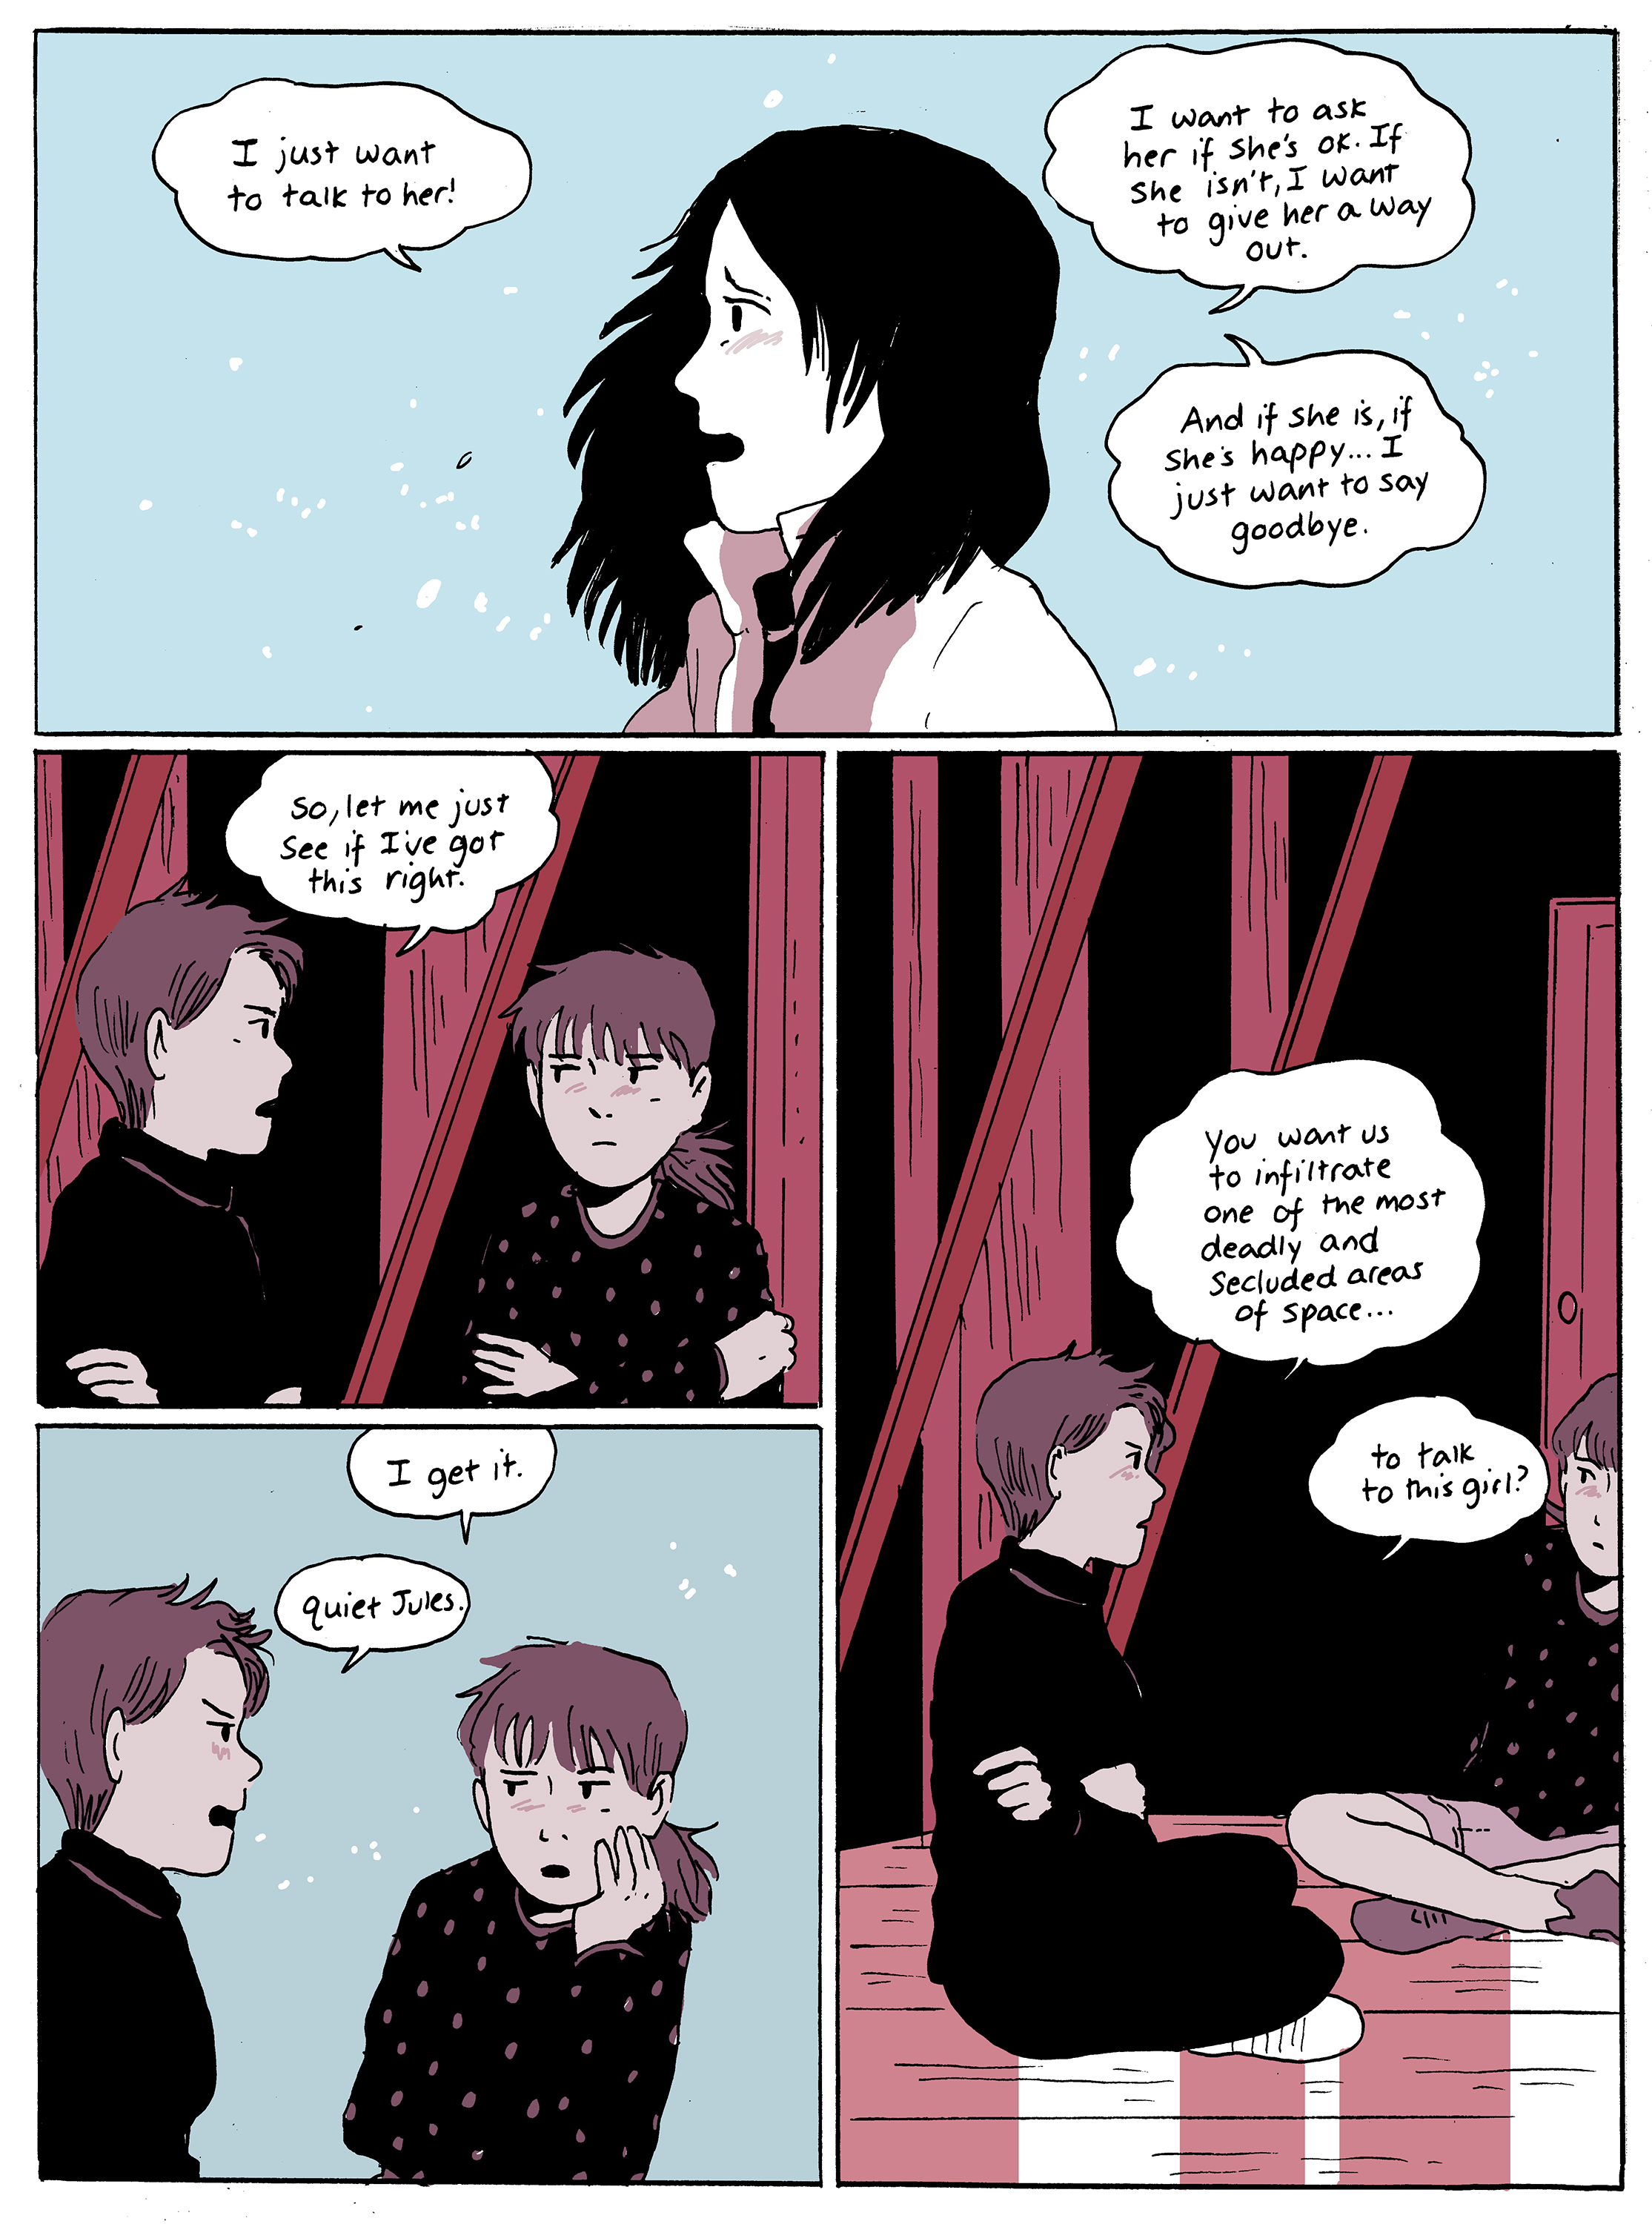 chapter13_page04.jpg